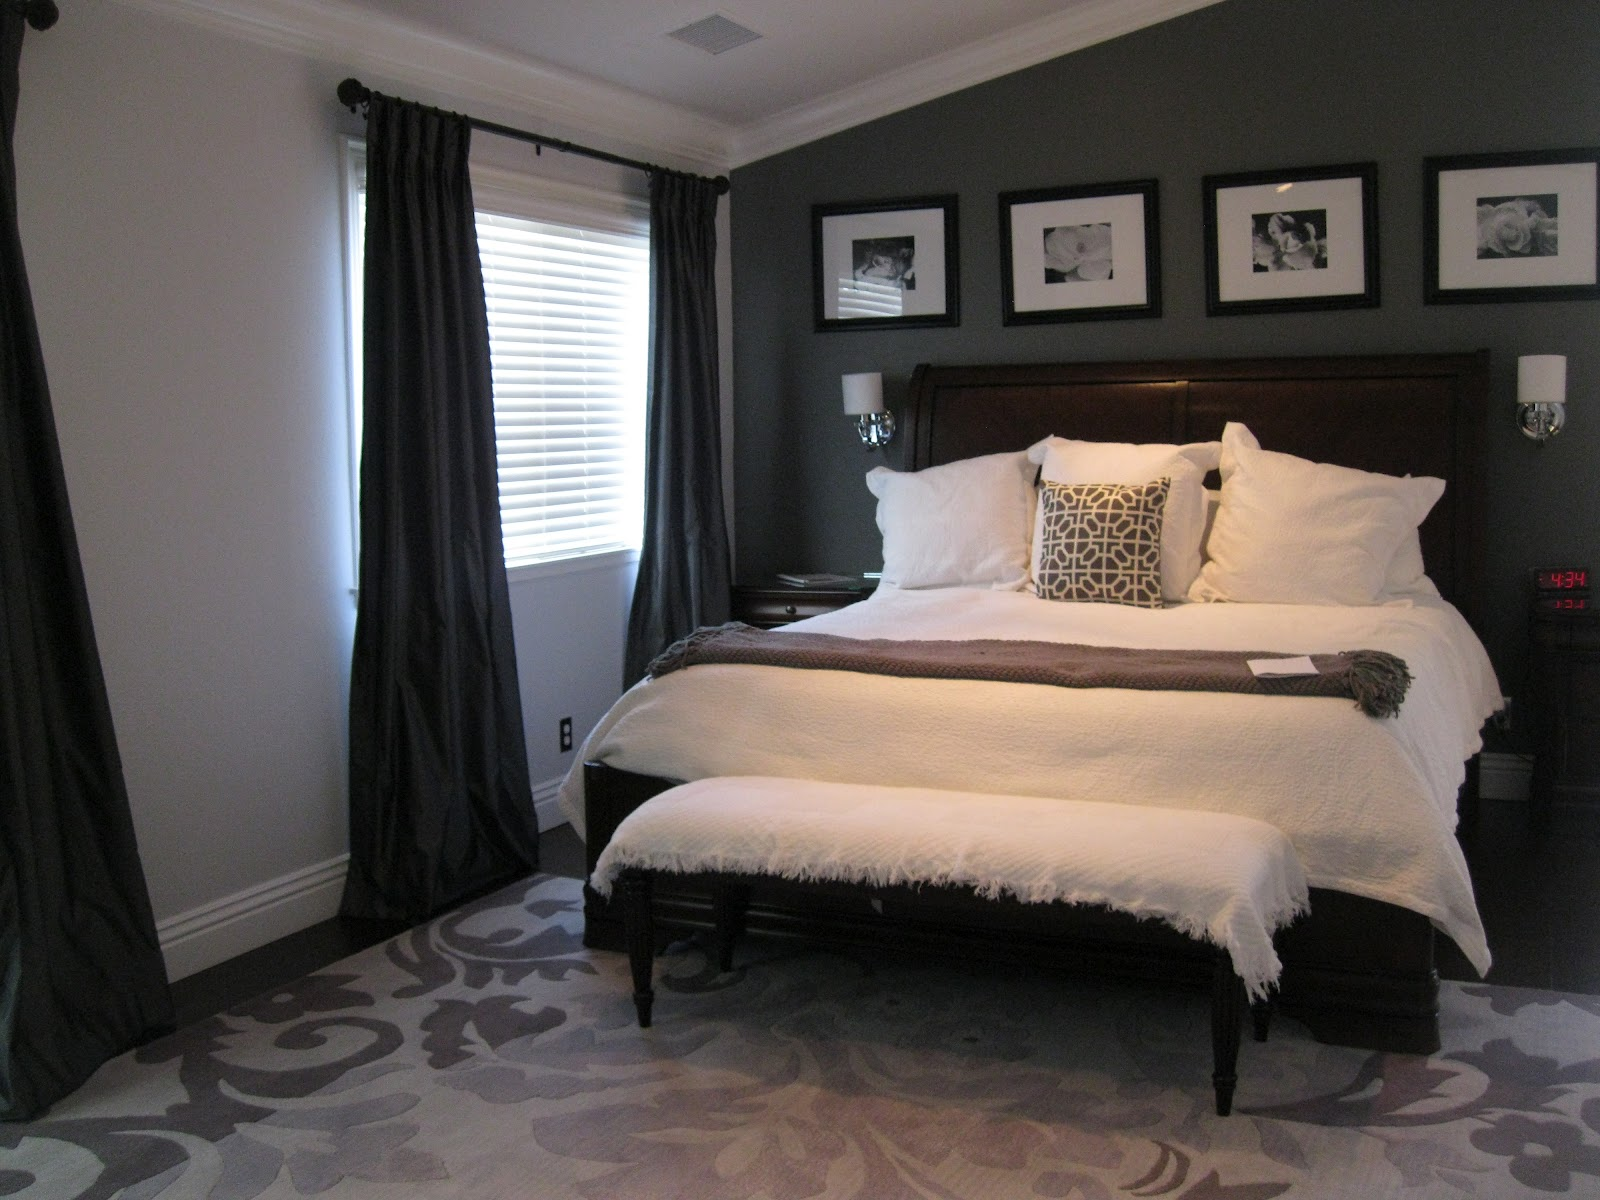 C B I D Home Decor And Design Charcoal Gray Master Suite: decorating ideas for bedroom with gray walls